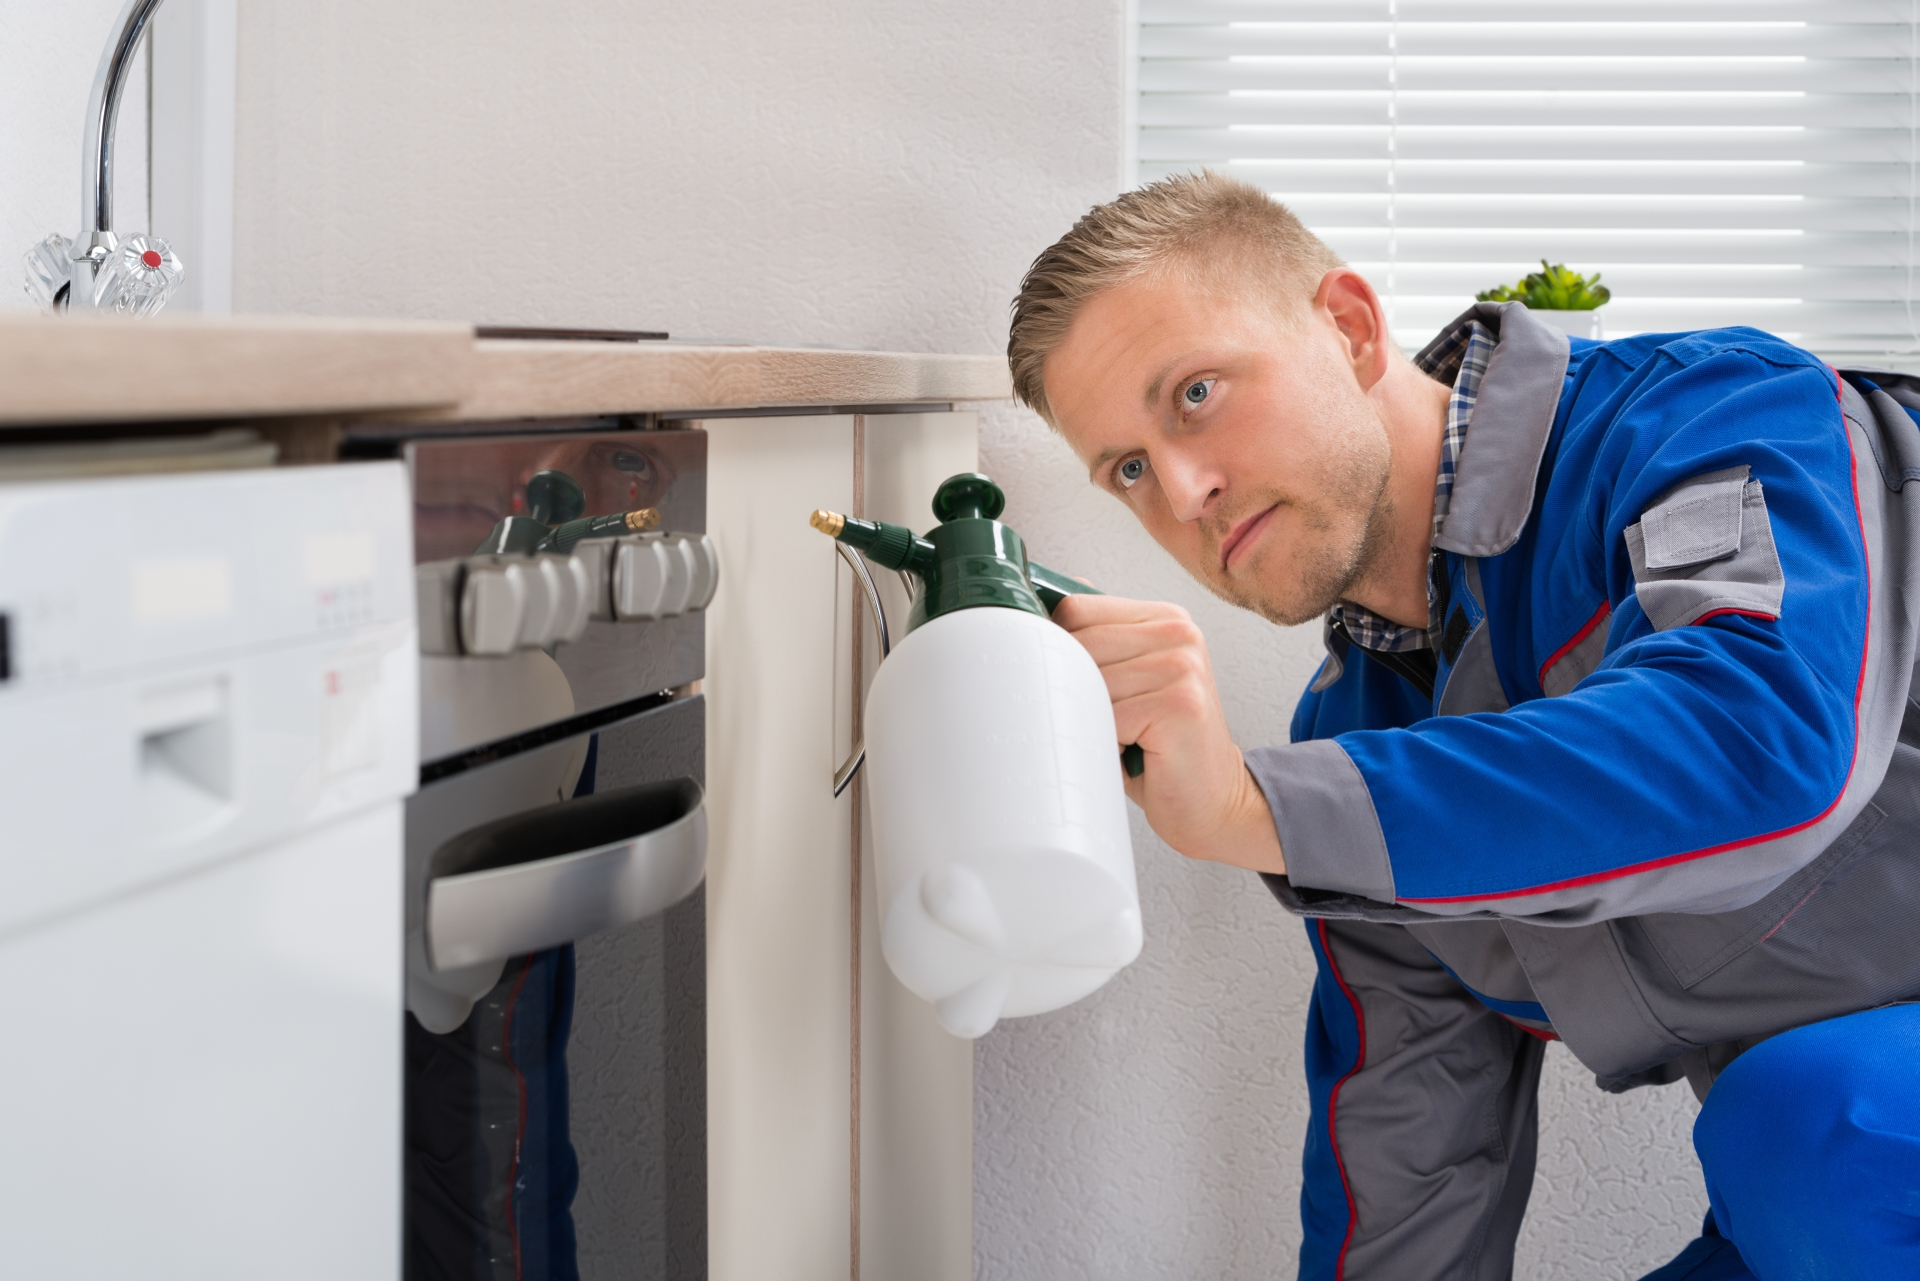 Pest Inspection, Pest Control in Manor Park, E12. Call Now 020 8166 9746